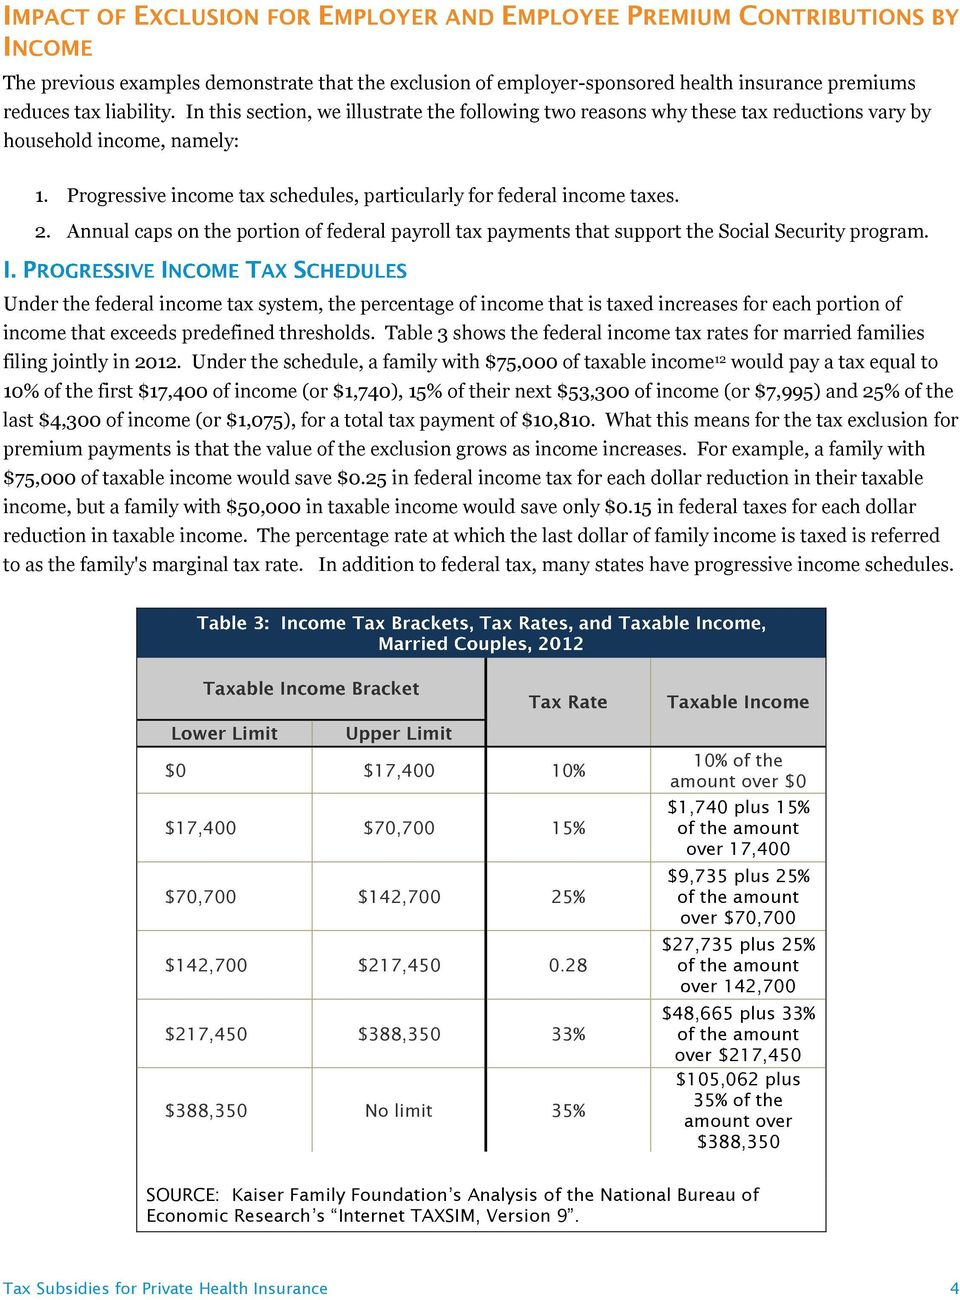 Annual caps on the portion of federal payroll tax payments that support the Social Security program.